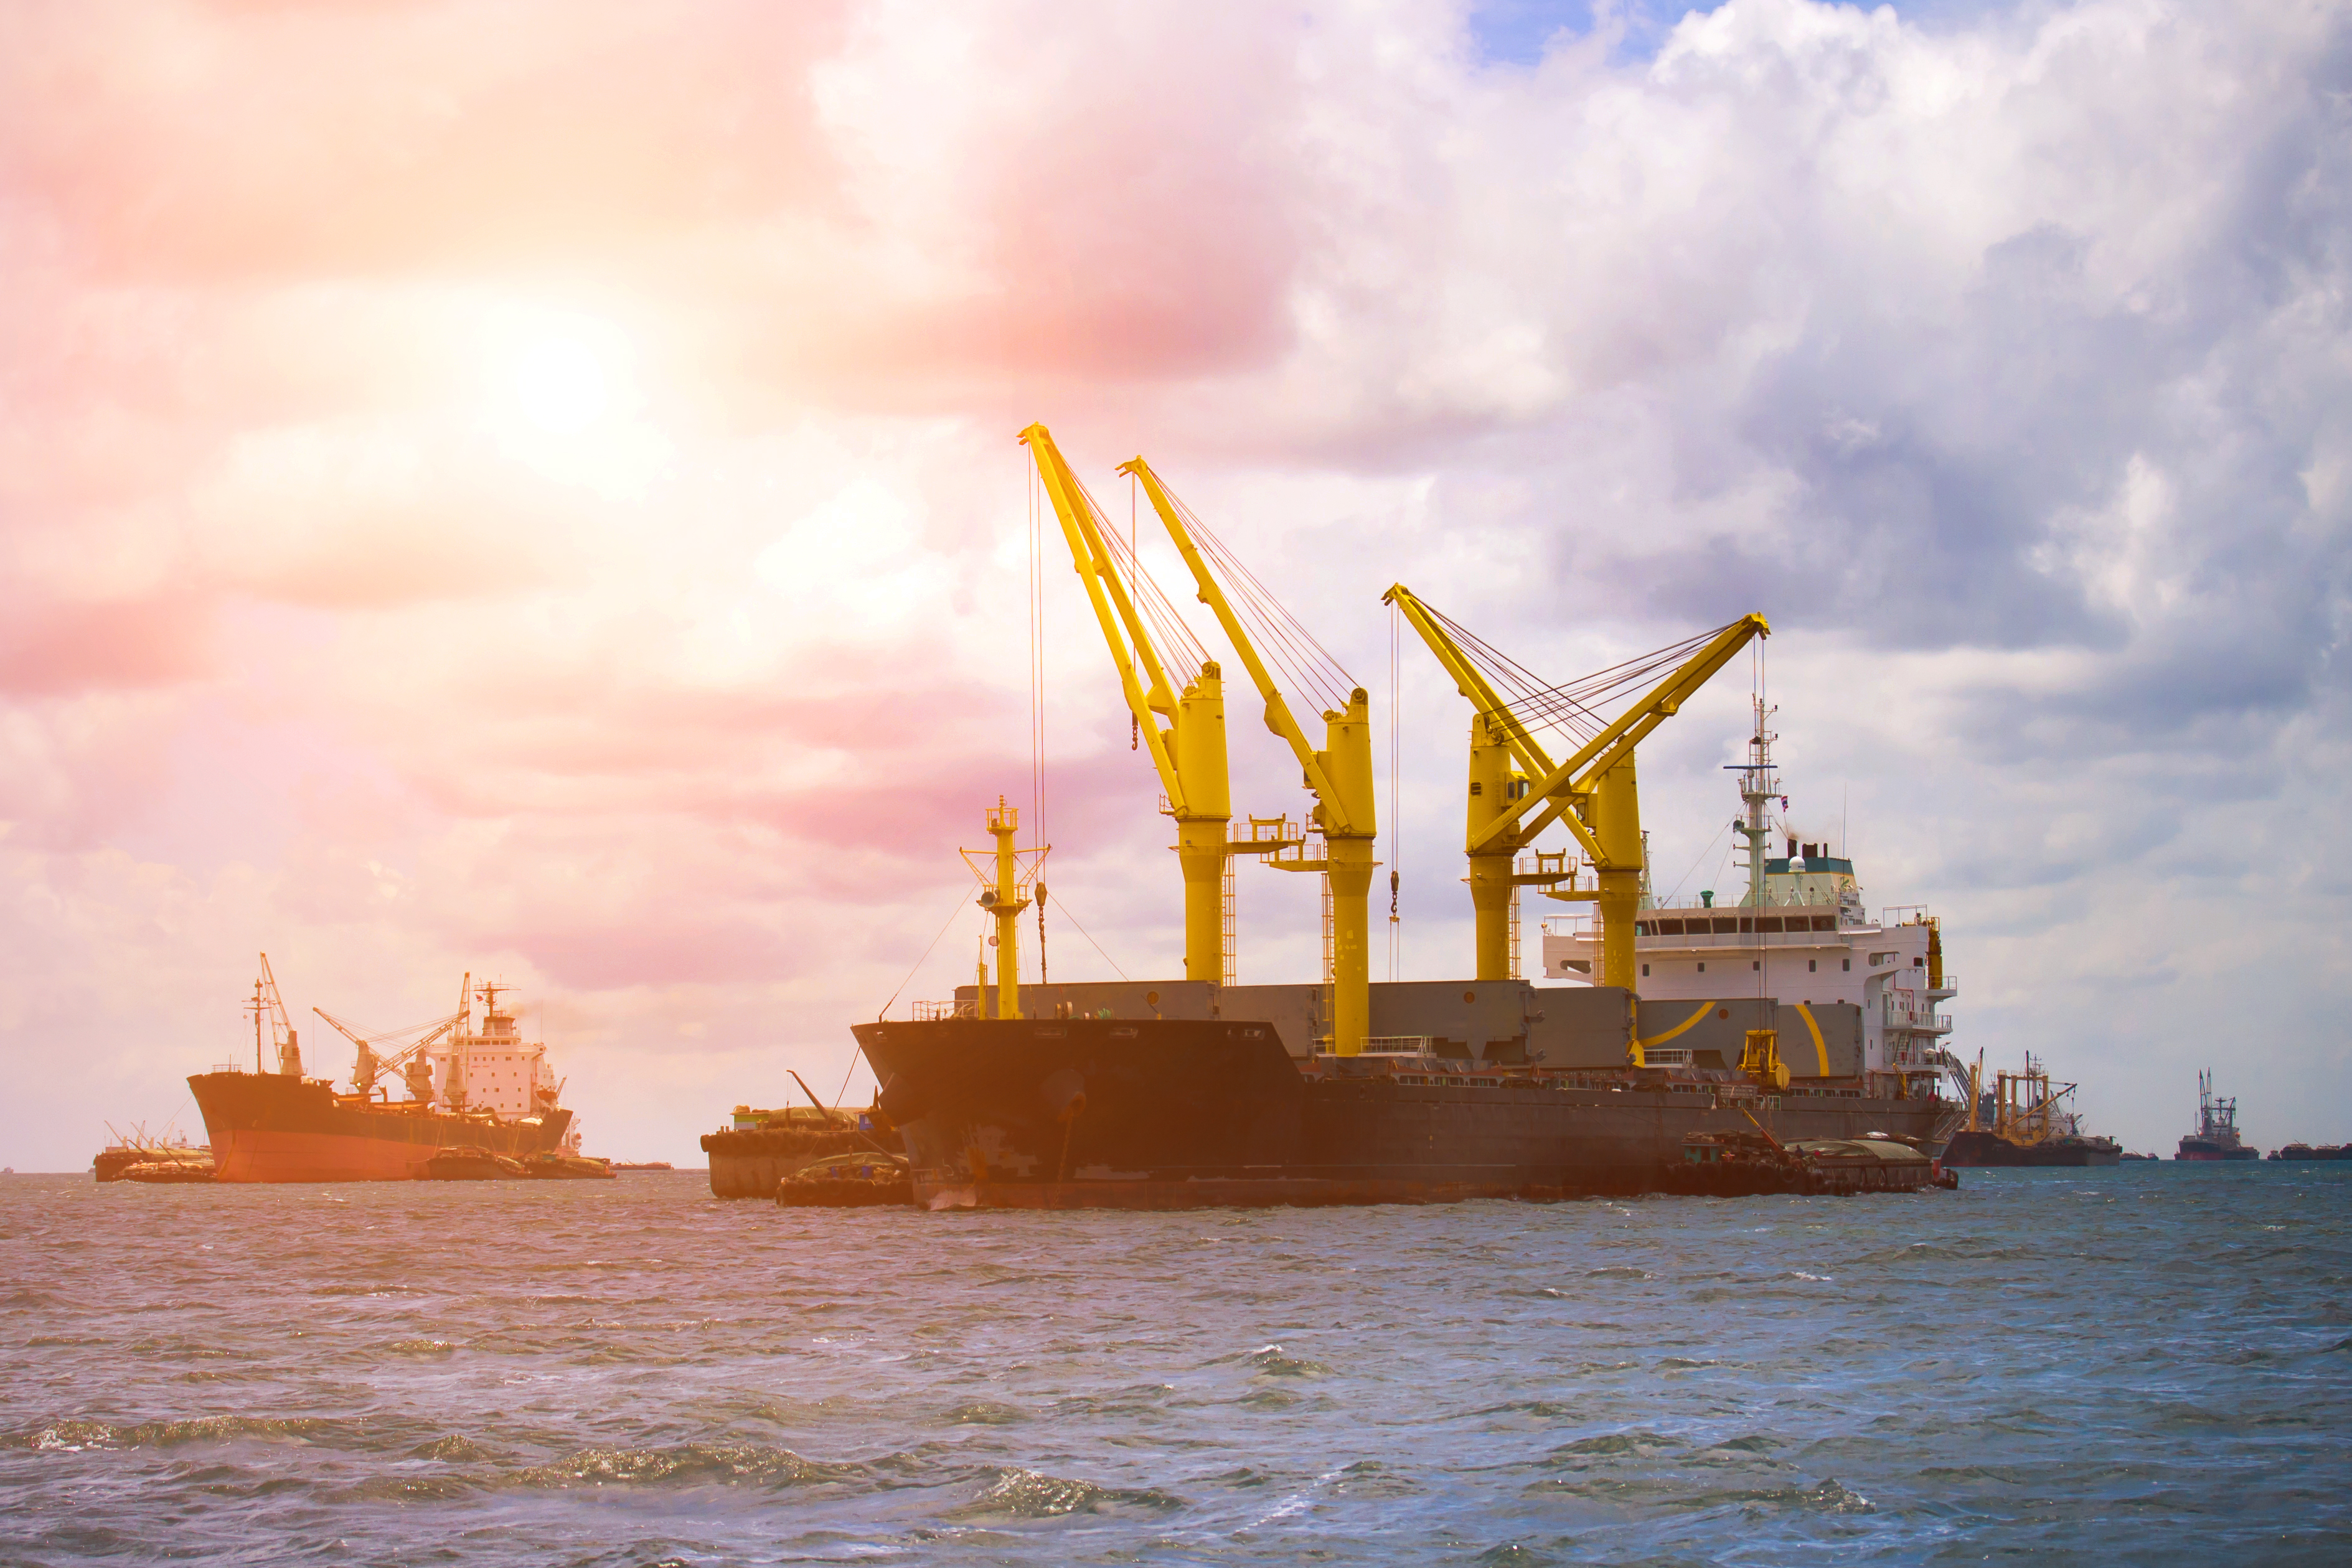 The voyage to digital optimisation in marine insurance